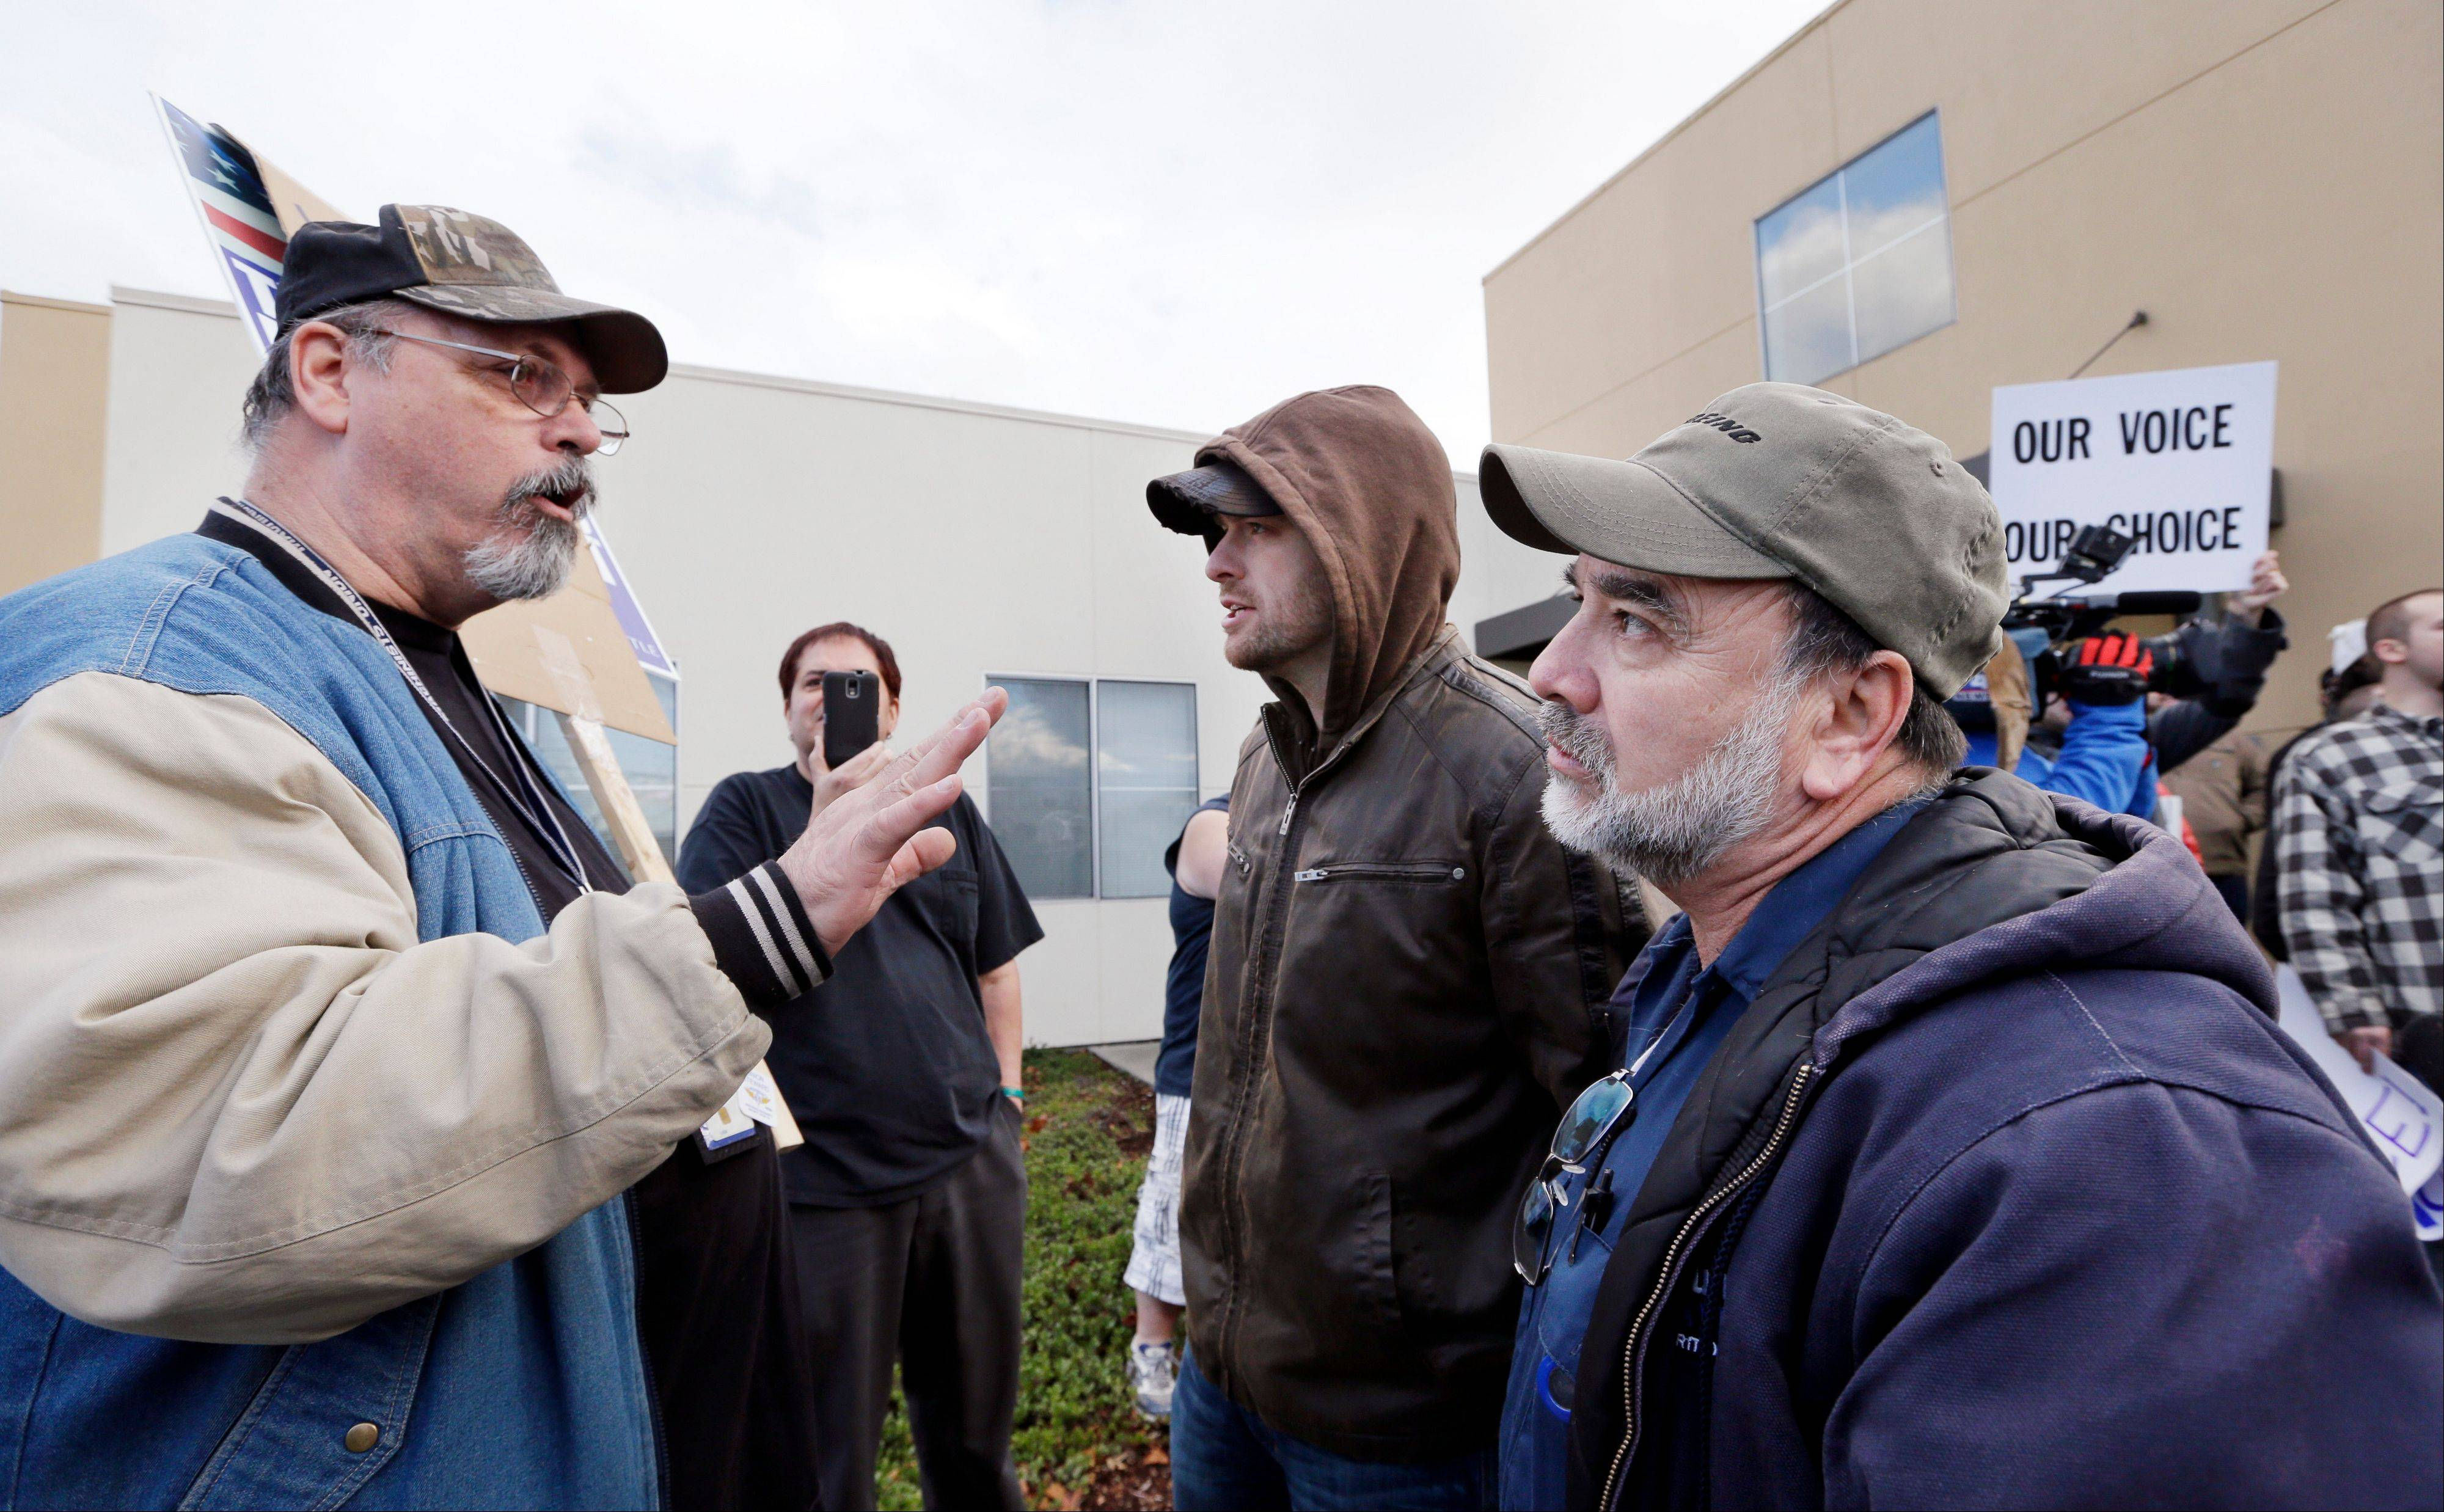 Machinists union shop steward Lester Mullen, left, explains the leadership position as he talks Wednesday with a small group of machinists union members who had rallied in favor of voting on Boeing�s last contract offer, in front of the machinists� union hall.